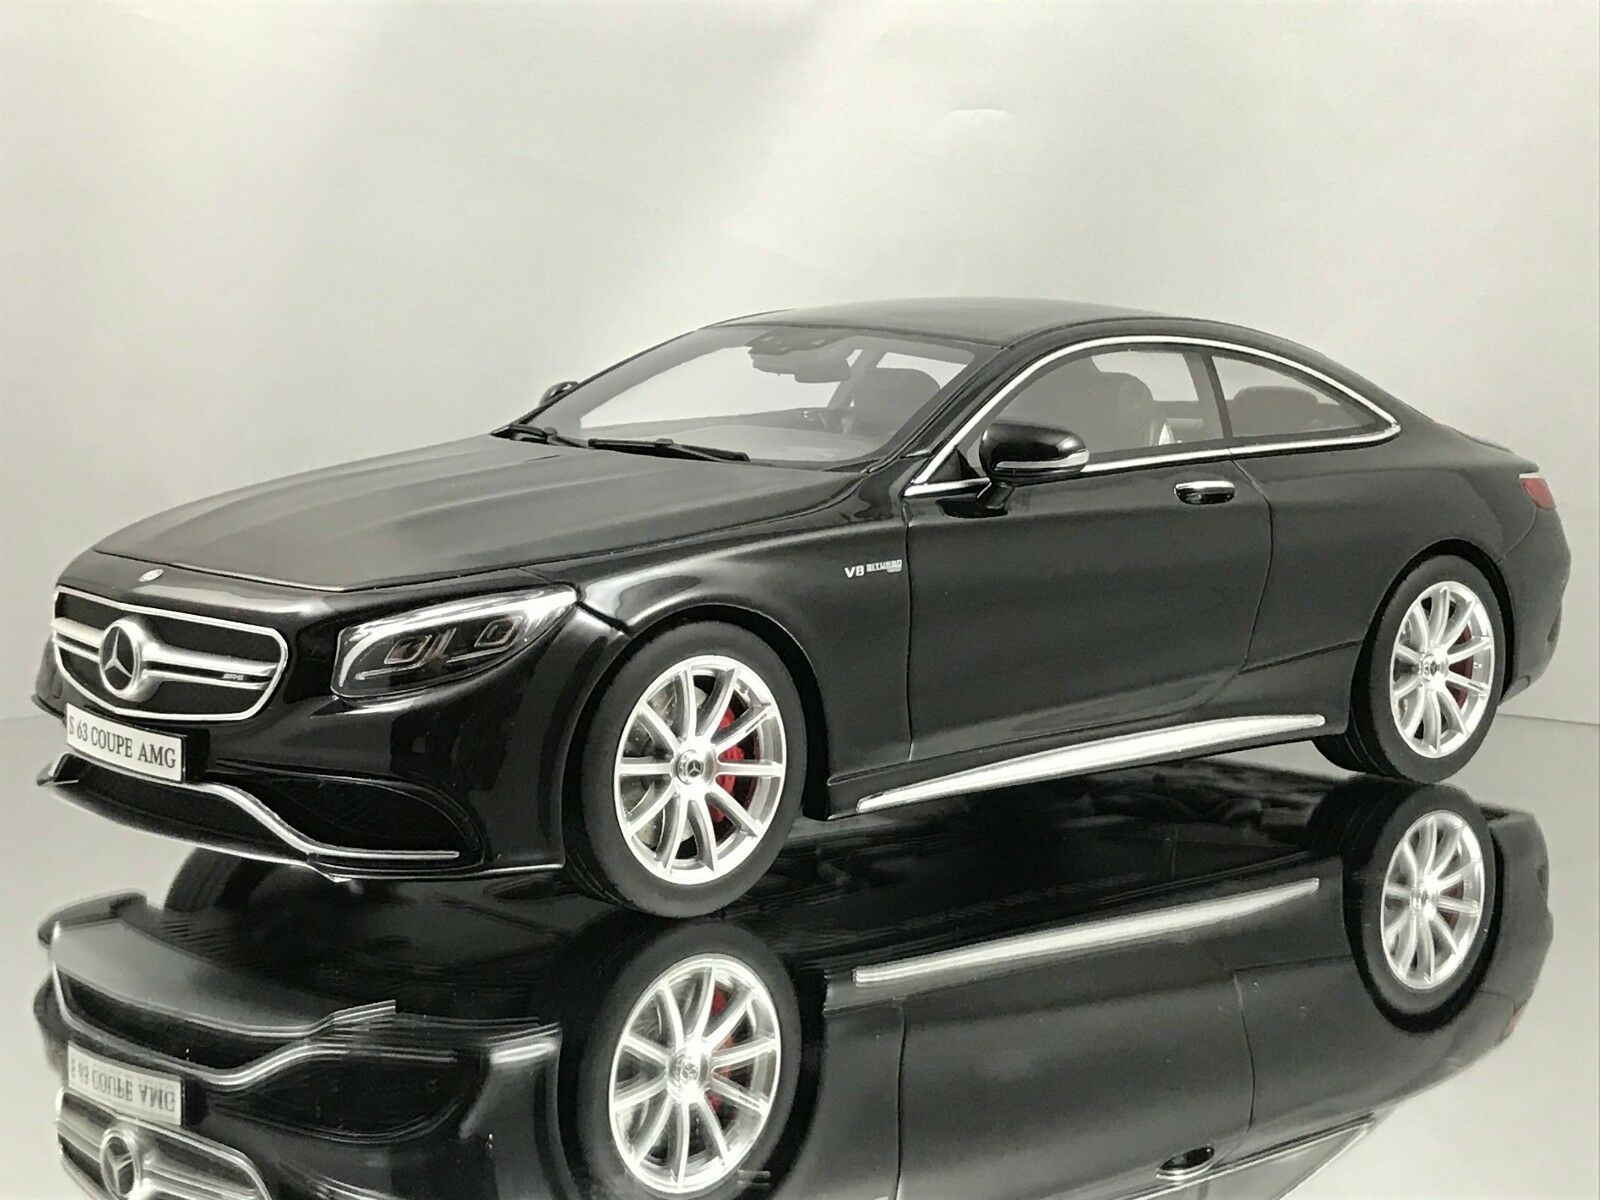 Mercedes Benz S63 Amg Coupe >> Gt Spirit Mercedes Benz S63 Amg S Class Coupe C217 Black Resin Model Car 1 18